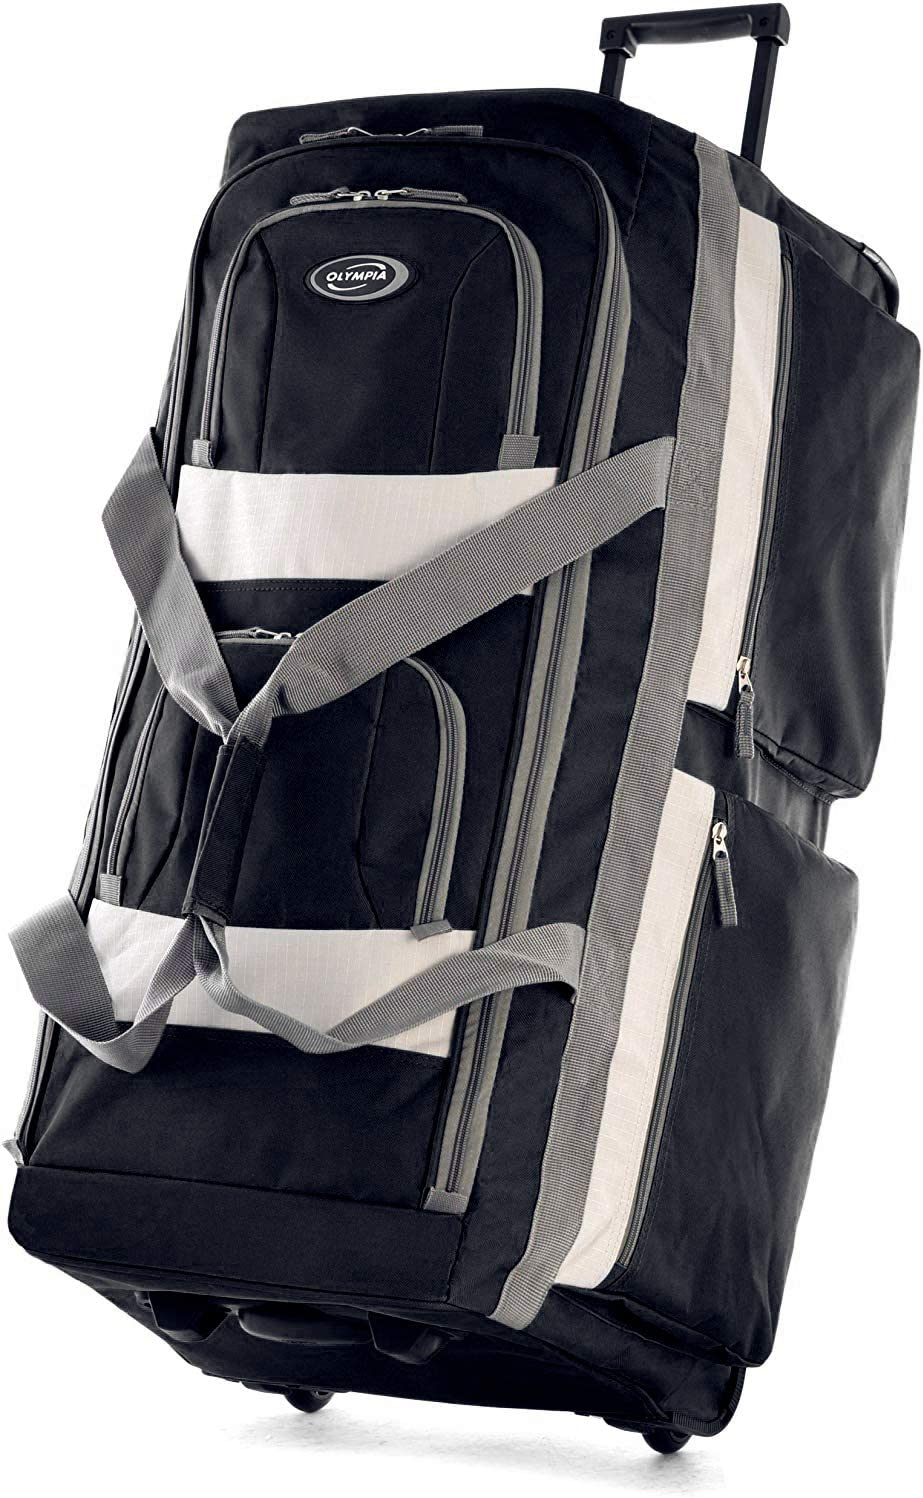 Olympia 8 Pocket Rolling Duffel Bag